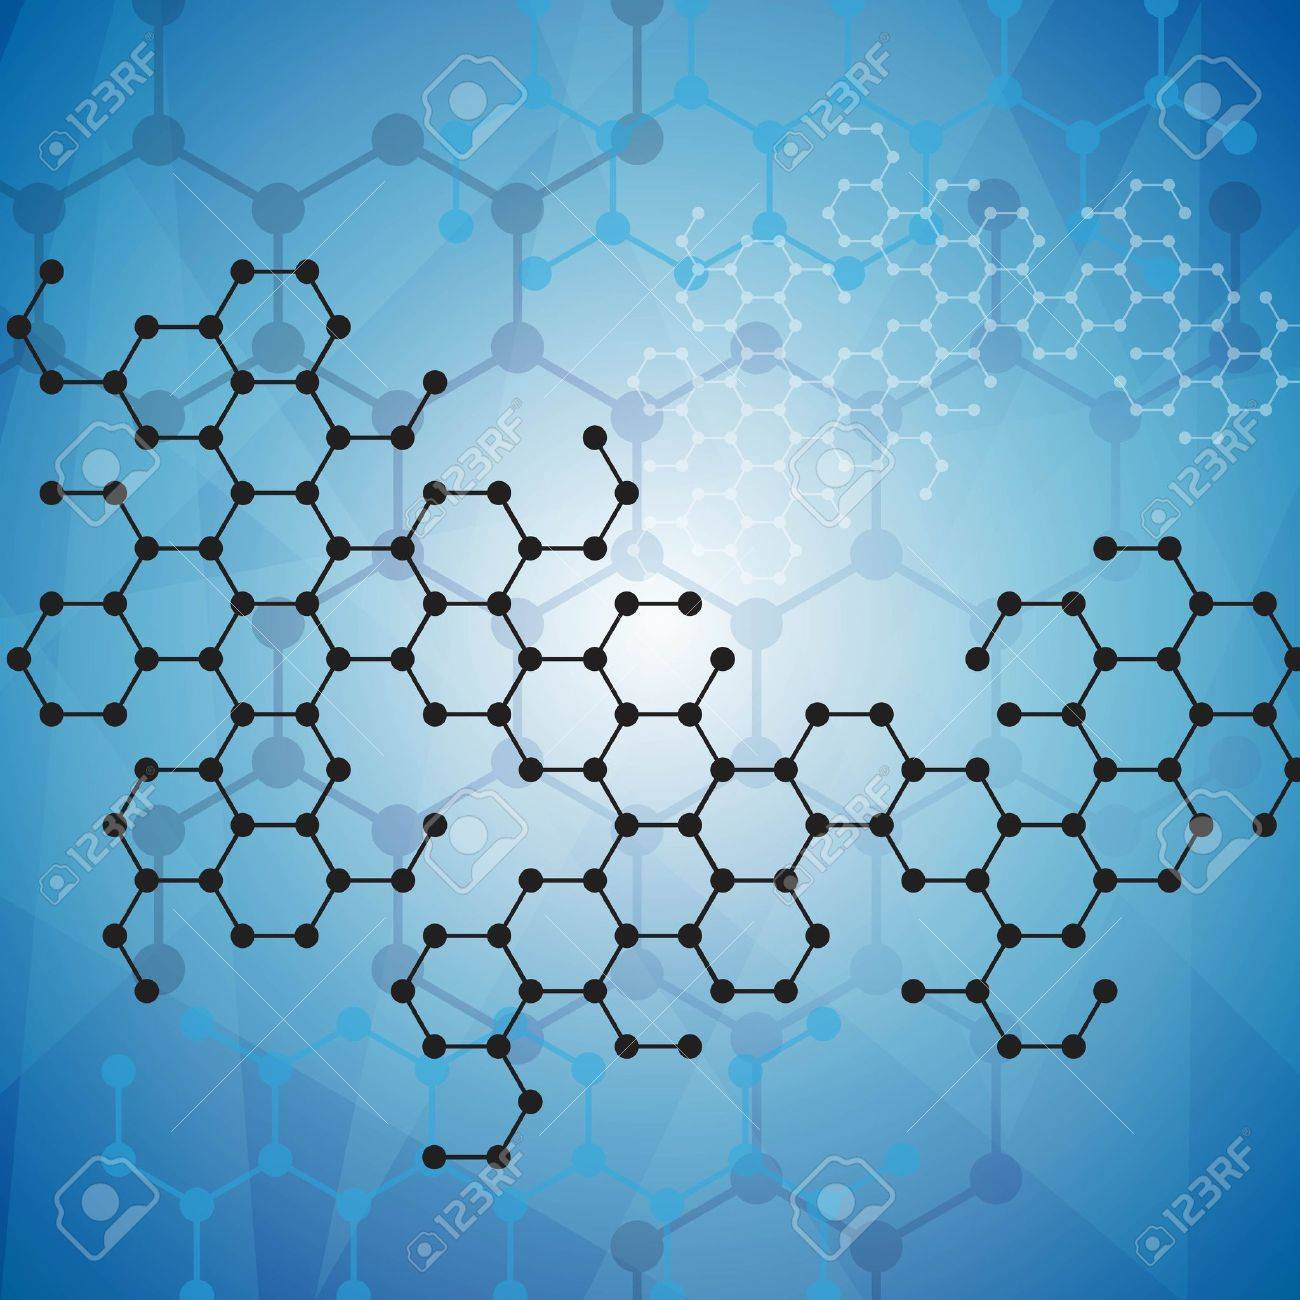 Abstract molecules medical background - 22119020